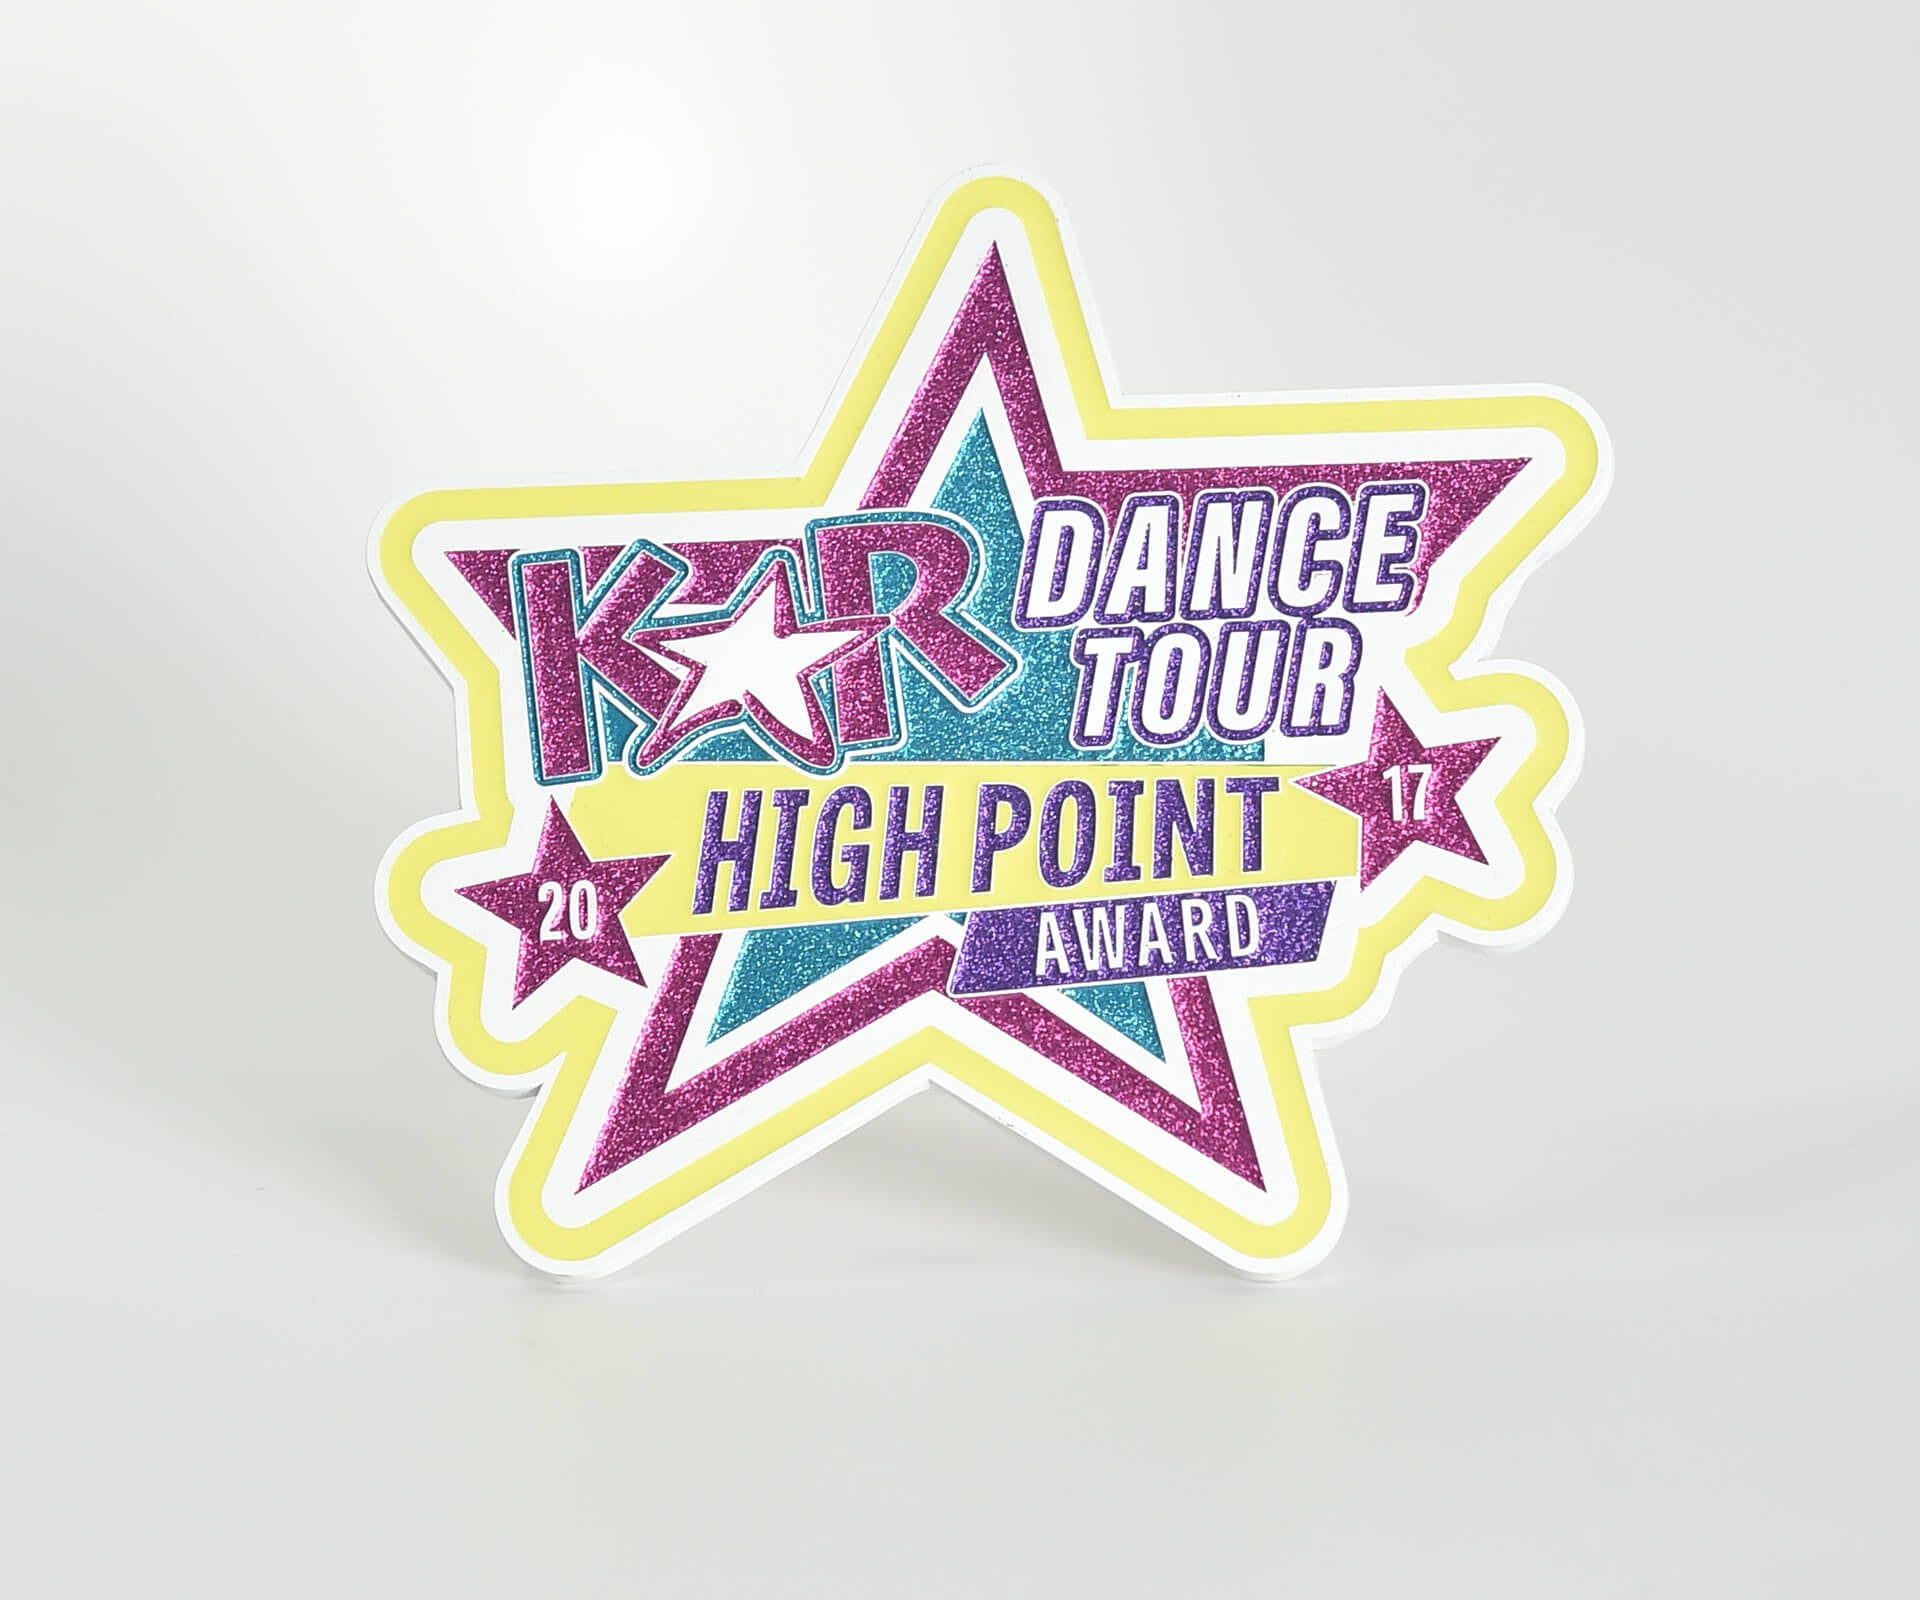 KAR High Point Award